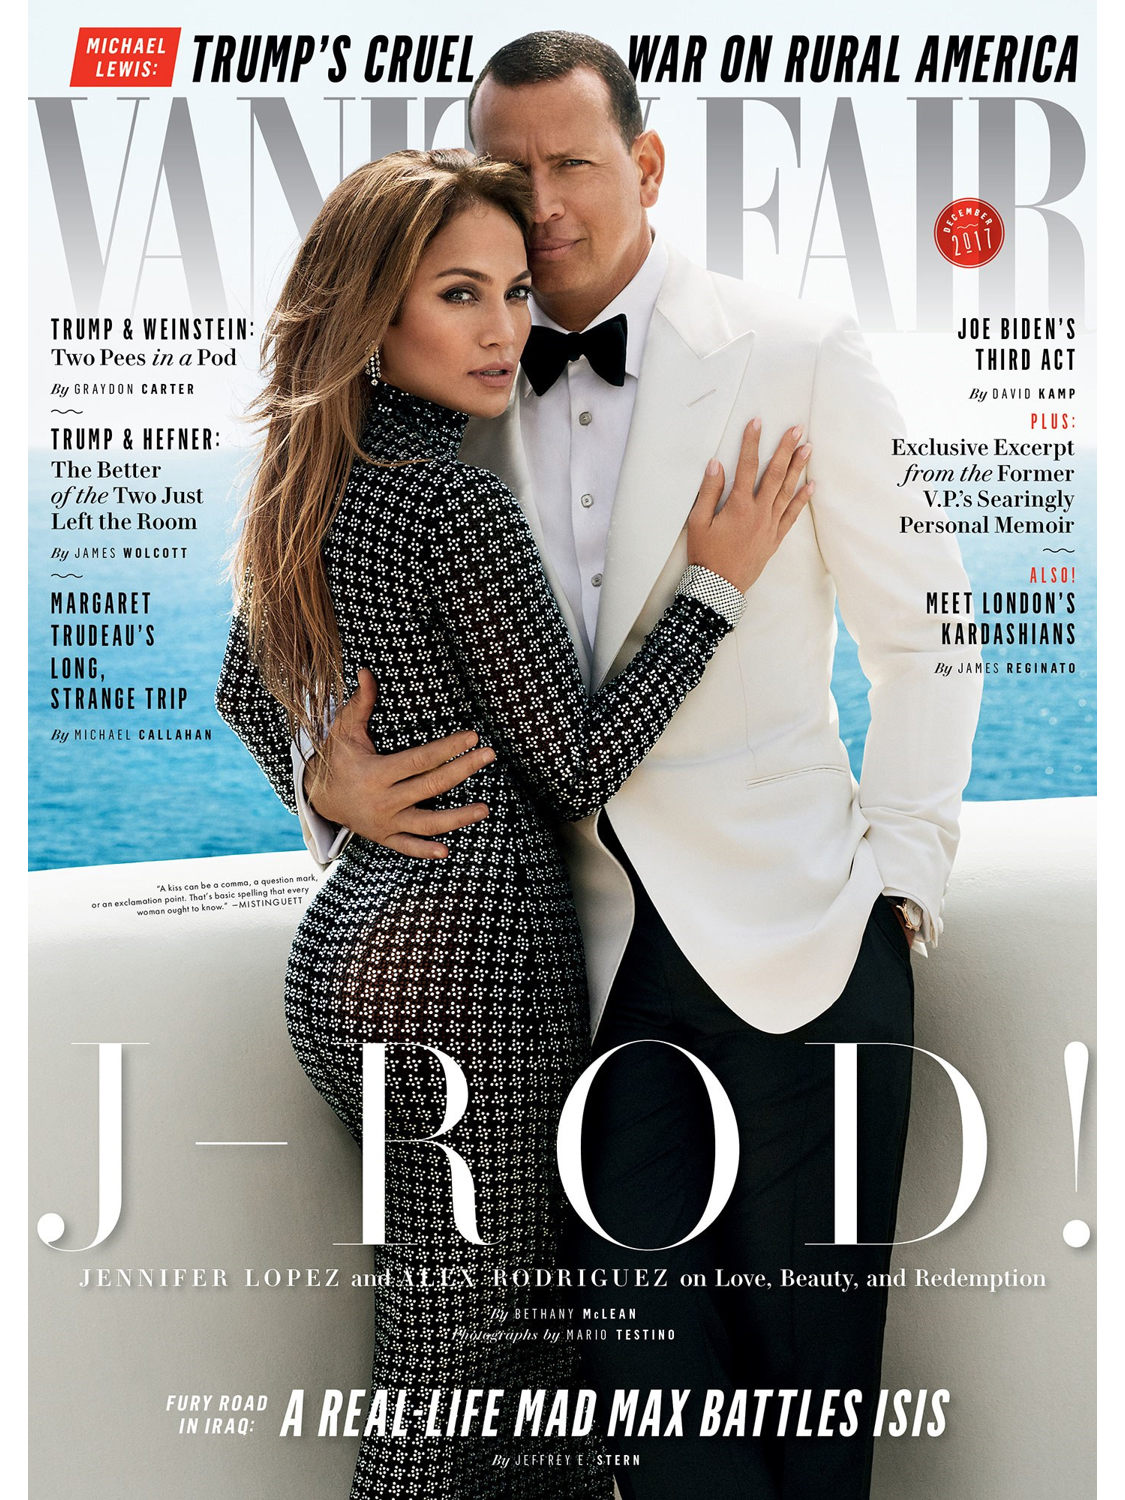 Vanity Fair Cover for online.png